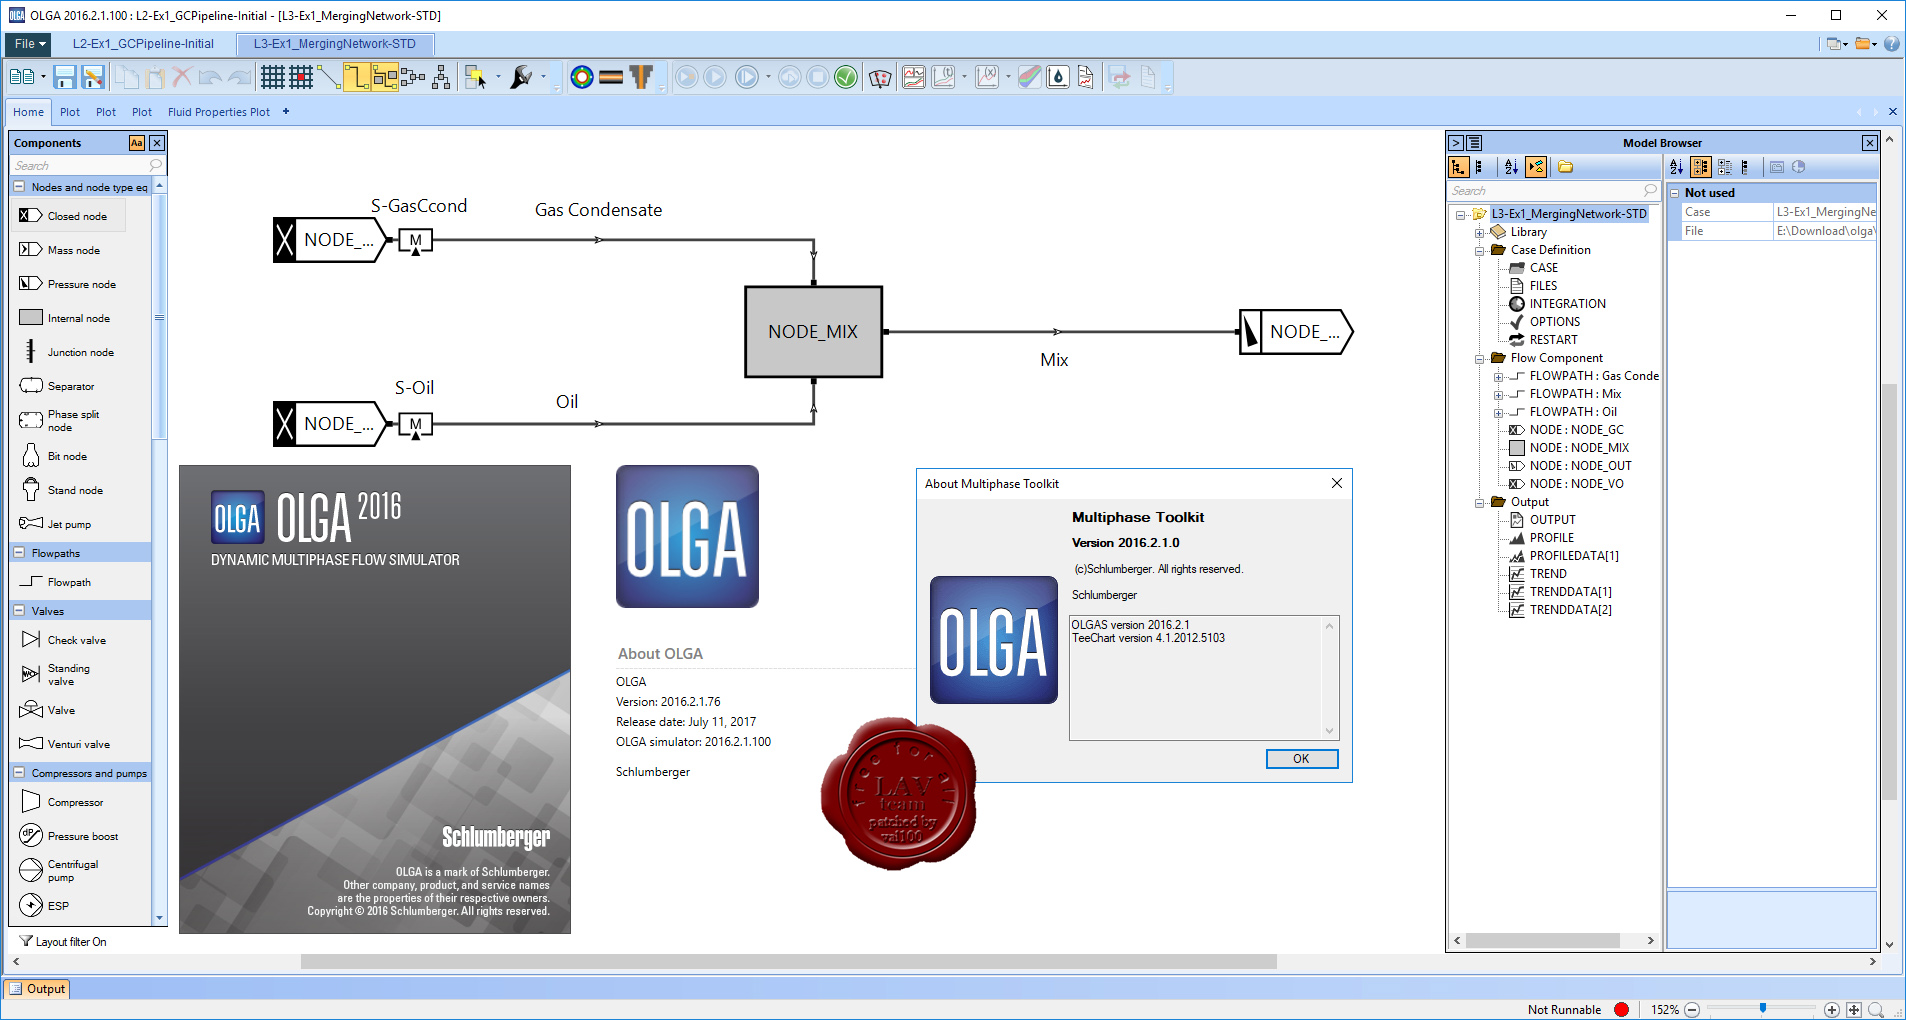 PDF) important pdf about techlog software